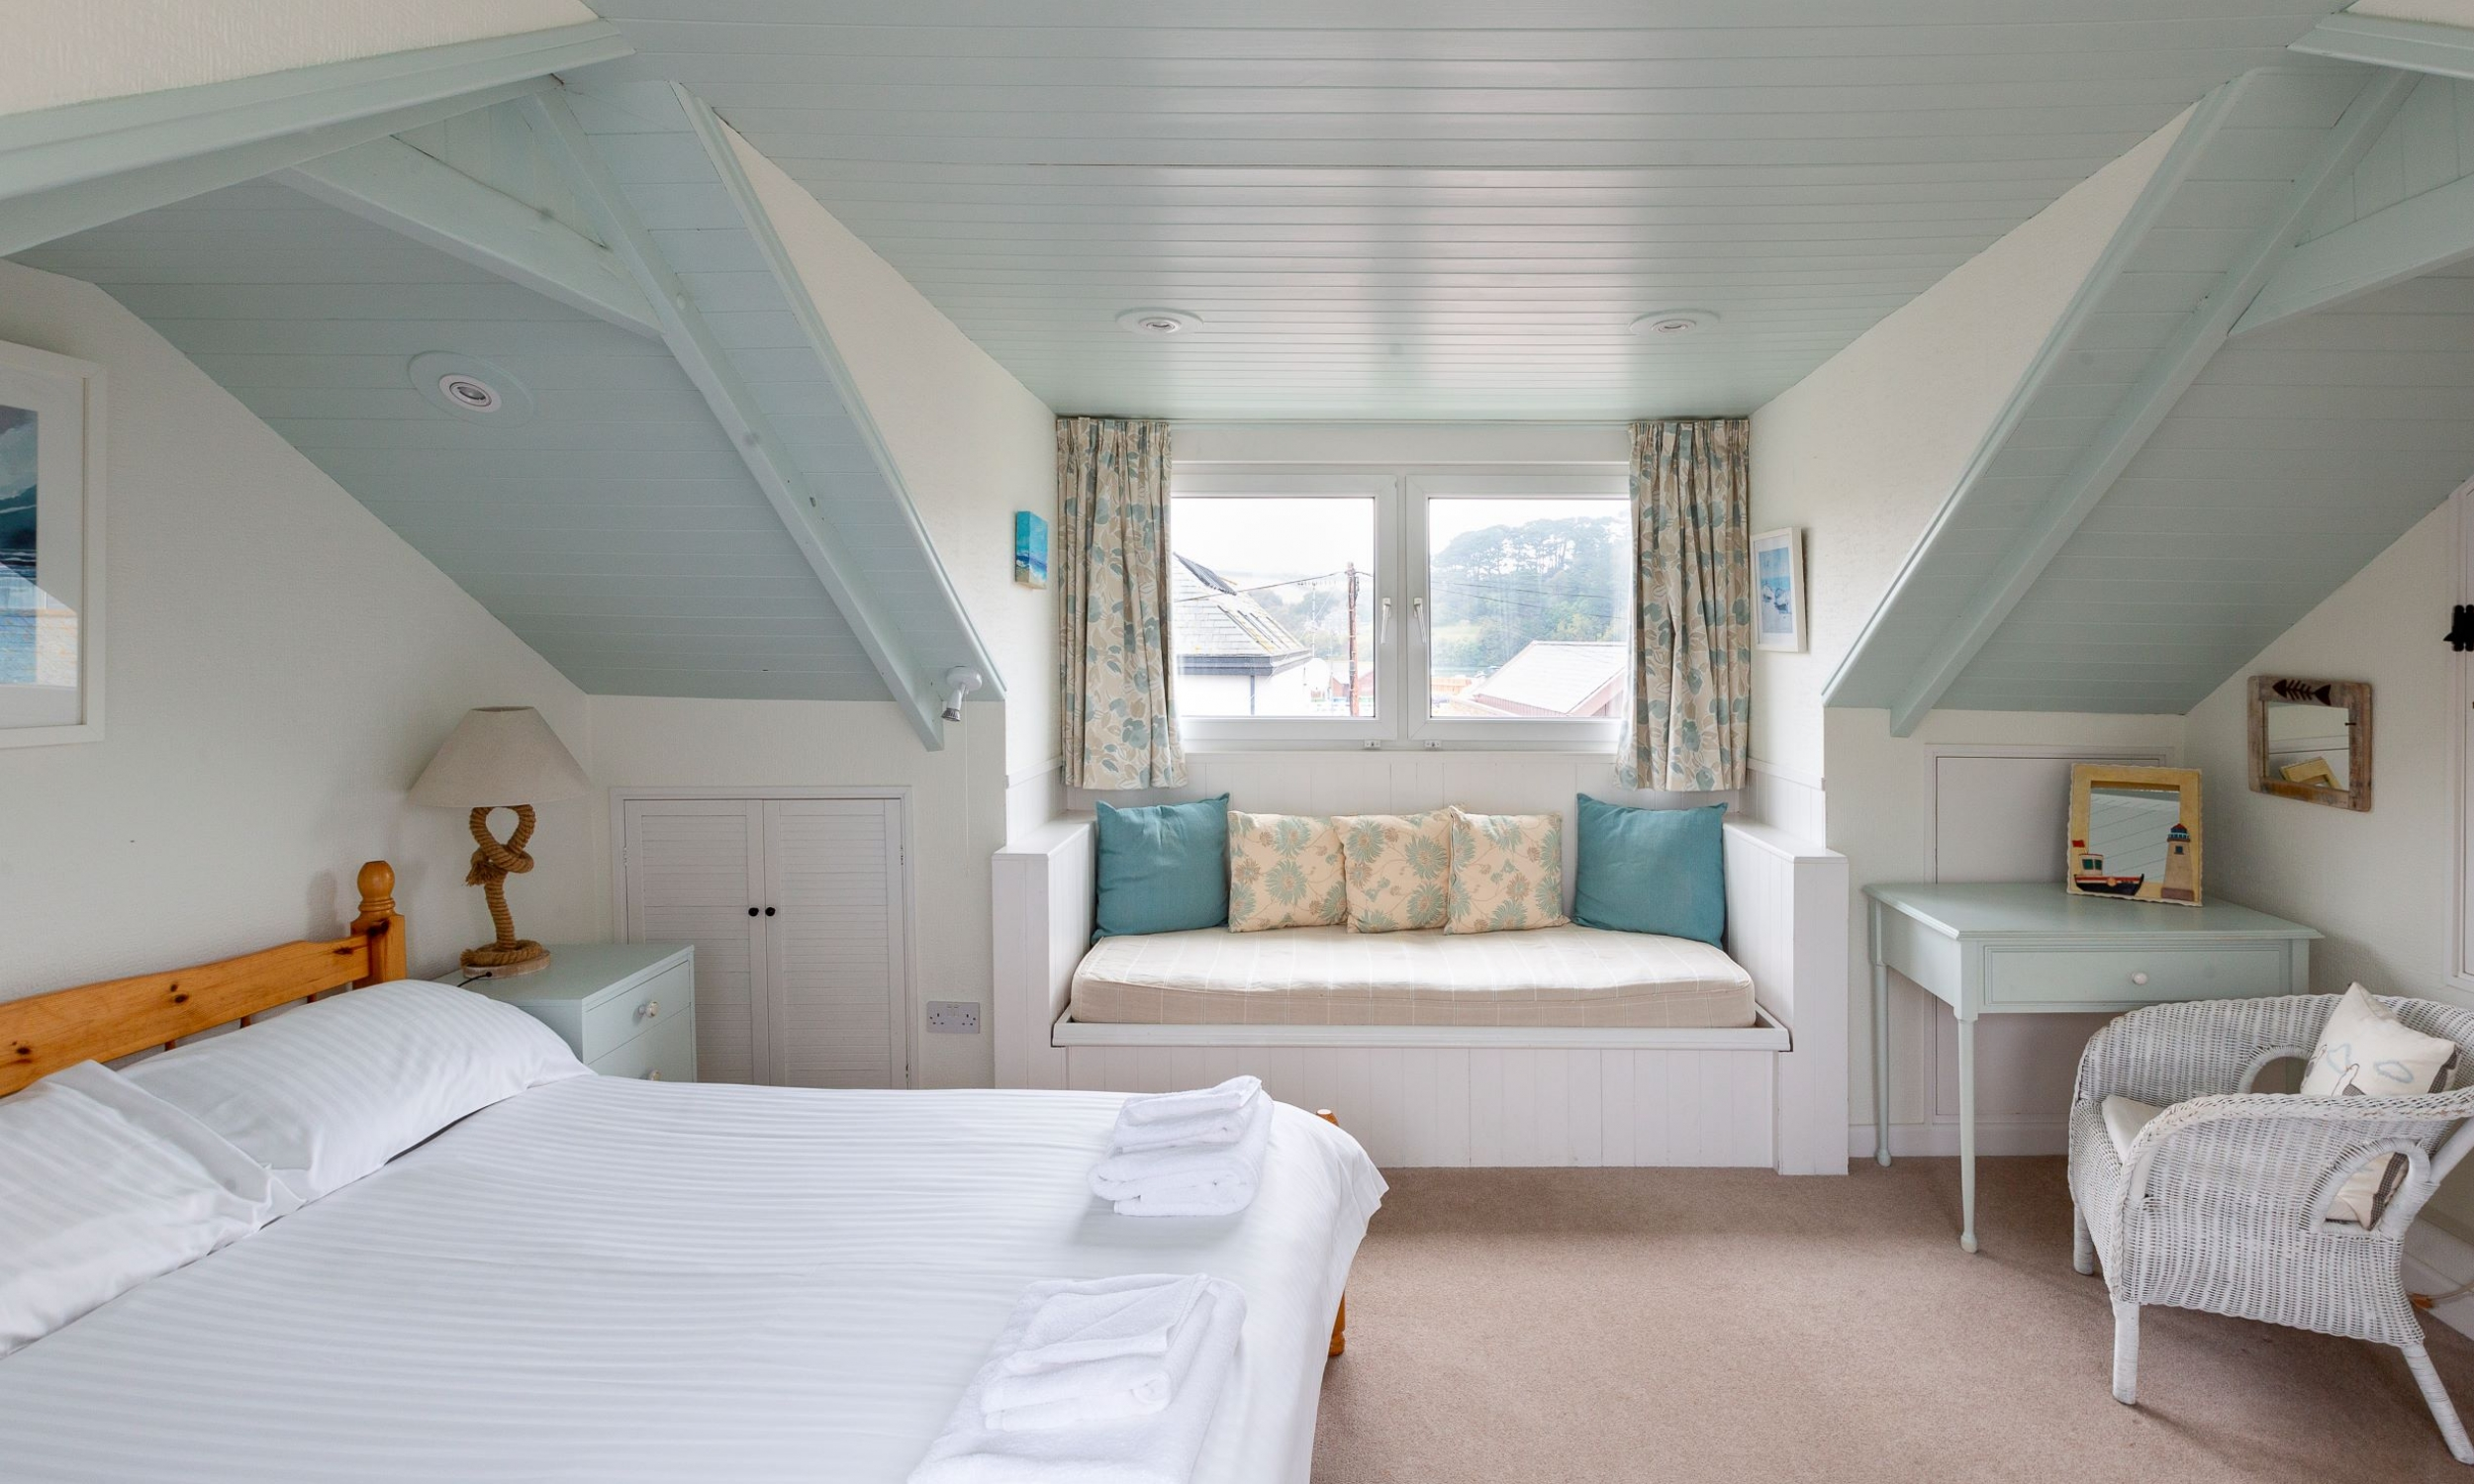 top bedroom with views over quay